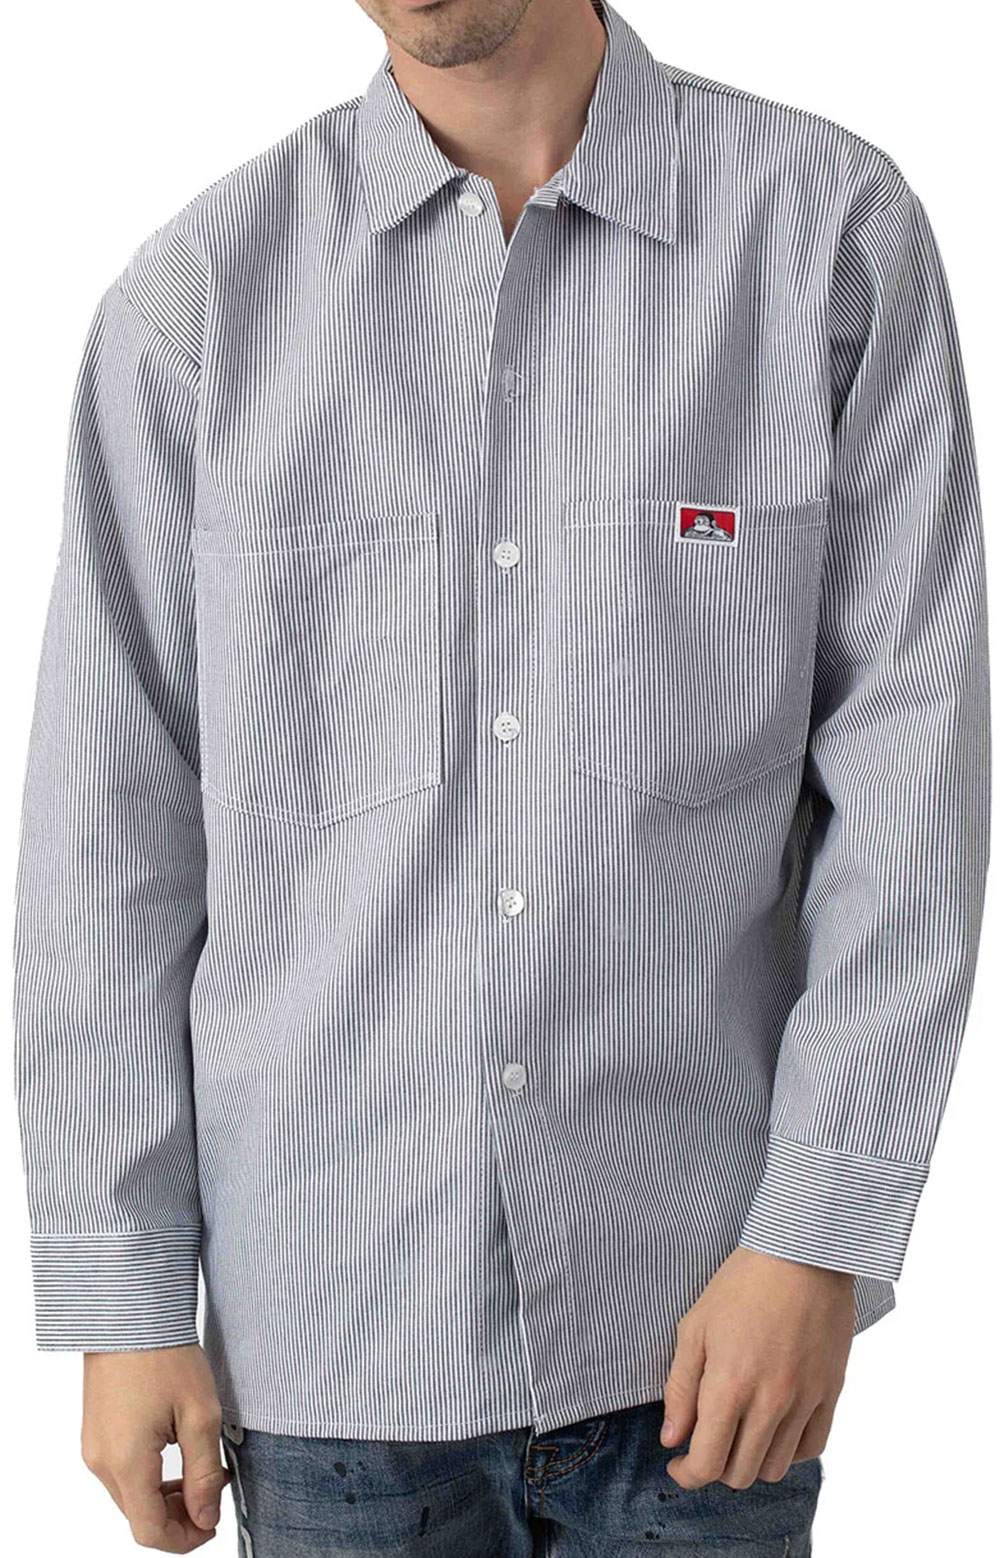 L/S Front Stripe Button-Up Shirt - Hickory